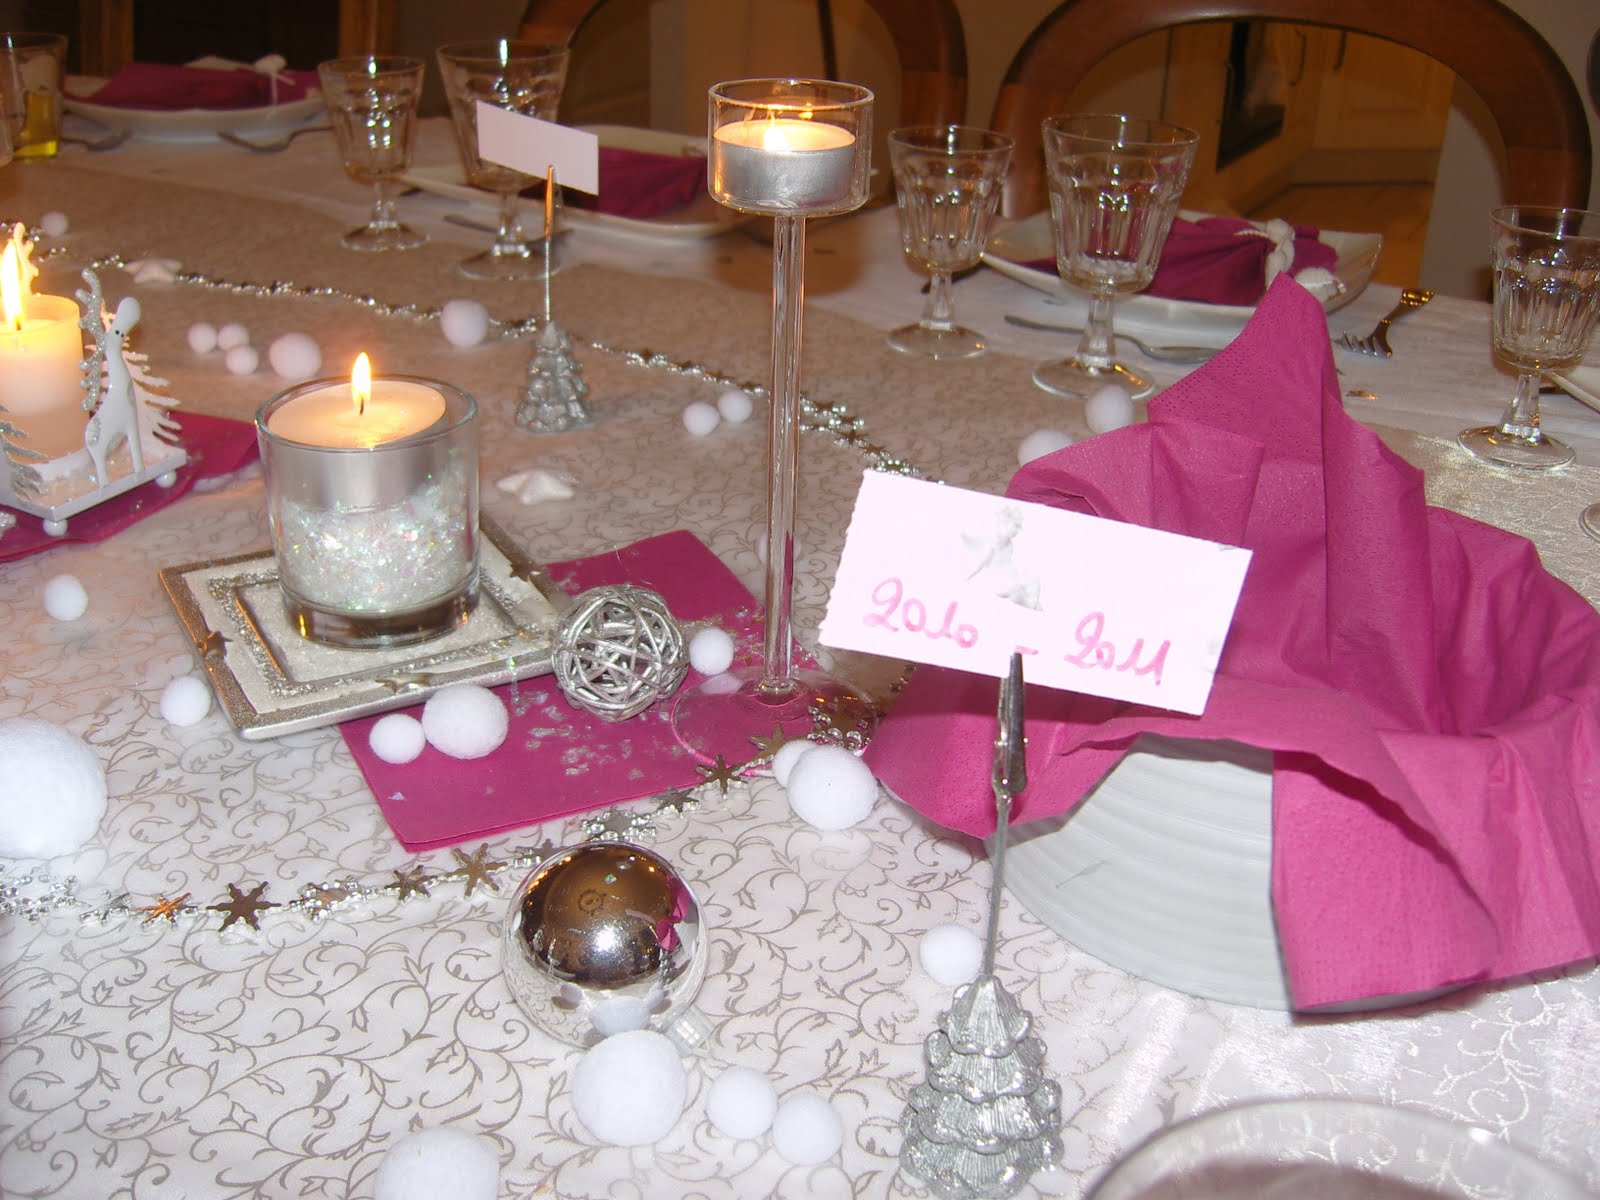 Dans la maison de s verine d coration de table du for Decoration reveillon